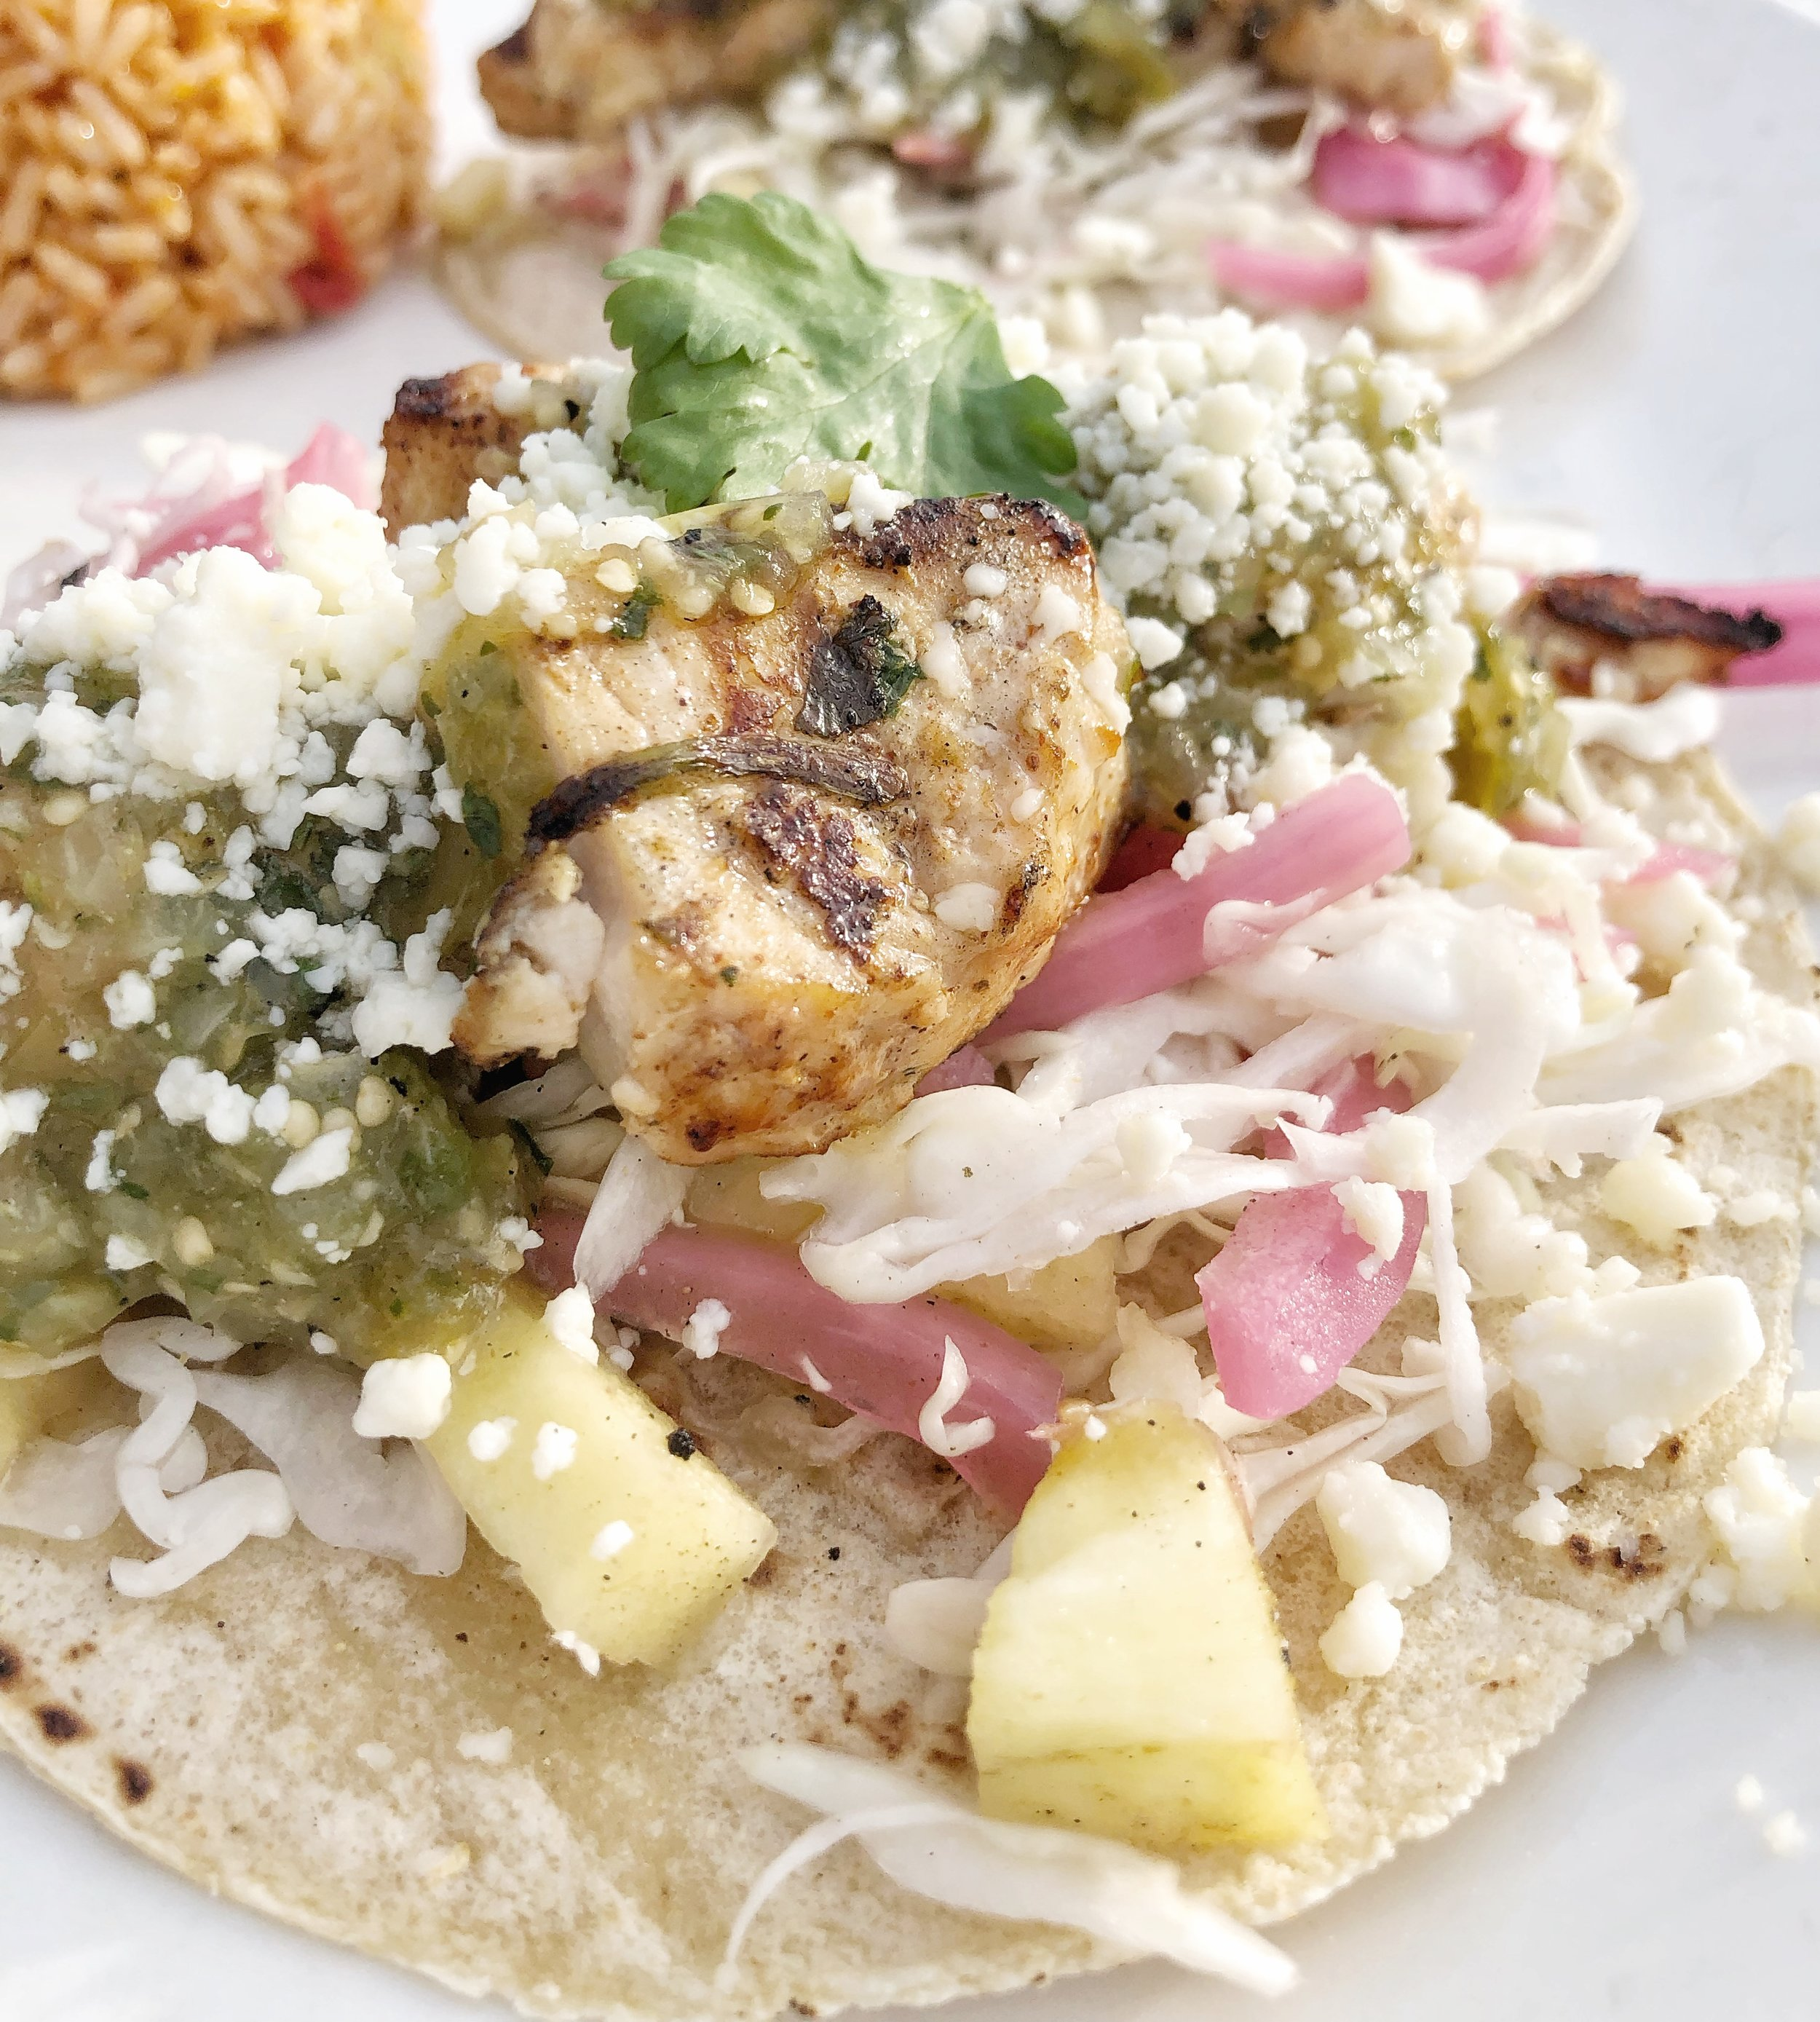 StreetSide Grilled Fish Tacos - Grilled white fish, fresh corn tortillas, grilled pineapple pickled onion, salsa verde served with Spanish rice & black beansDid someone say Taco Tuesday? Who wants to crowd into